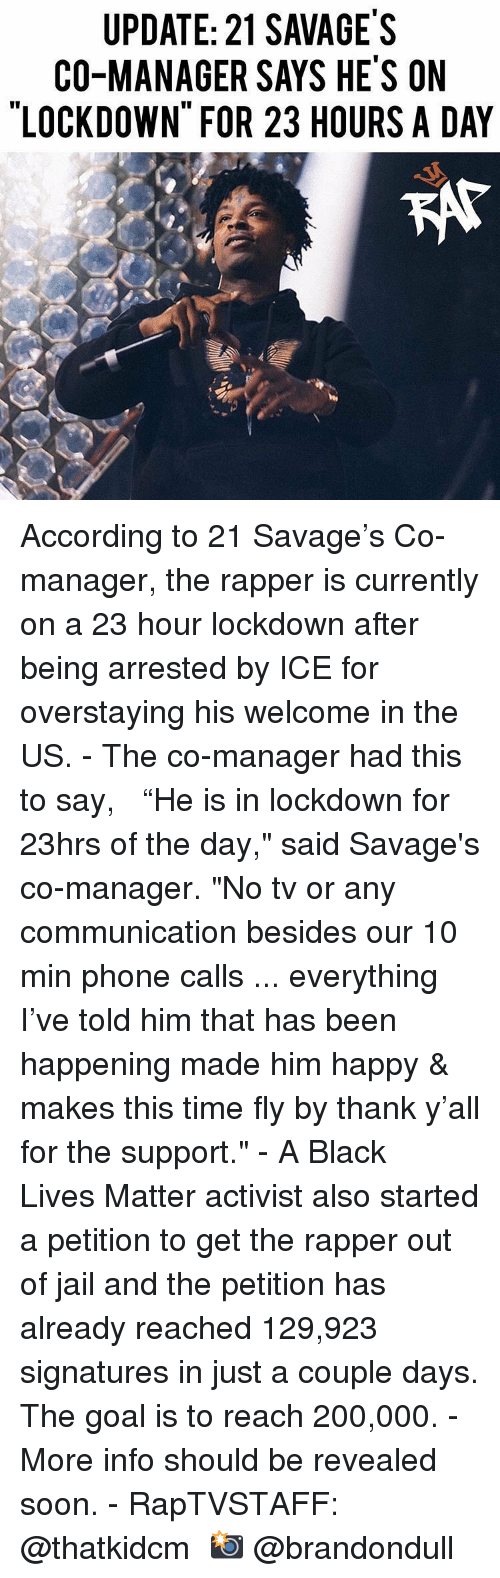 """Bailey Jay, Black Lives Matter, and Jail: UPDATE: 21 SAVAGE'S  CO-MANAGER SAYS HE'S ON  LOCKDOWN FOR 23 HOURS A DAY  KAt According to 21 Savage's Co-manager, the rapper is currently on a 23 hour lockdown after being arrested by ICE for overstaying his welcome in the US. - The co-manager had this to say,   """"He is in lockdown for 23hrs of the day,"""" said Savage's co-manager. """"No tv or any communication besides our 10 min phone calls ... everything I've told him that has been happening made him happy & makes this time fly by thank y'all for the support."""" - A Black Lives Matter activist also started a petition to get the rapper out of jail and the petition has already reached 129,923 signatures in just a couple days. The goal is to reach 200,000. - More info should be revealed soon. - RapTVSTAFF: @thatkidcm 📸 @brandondull"""